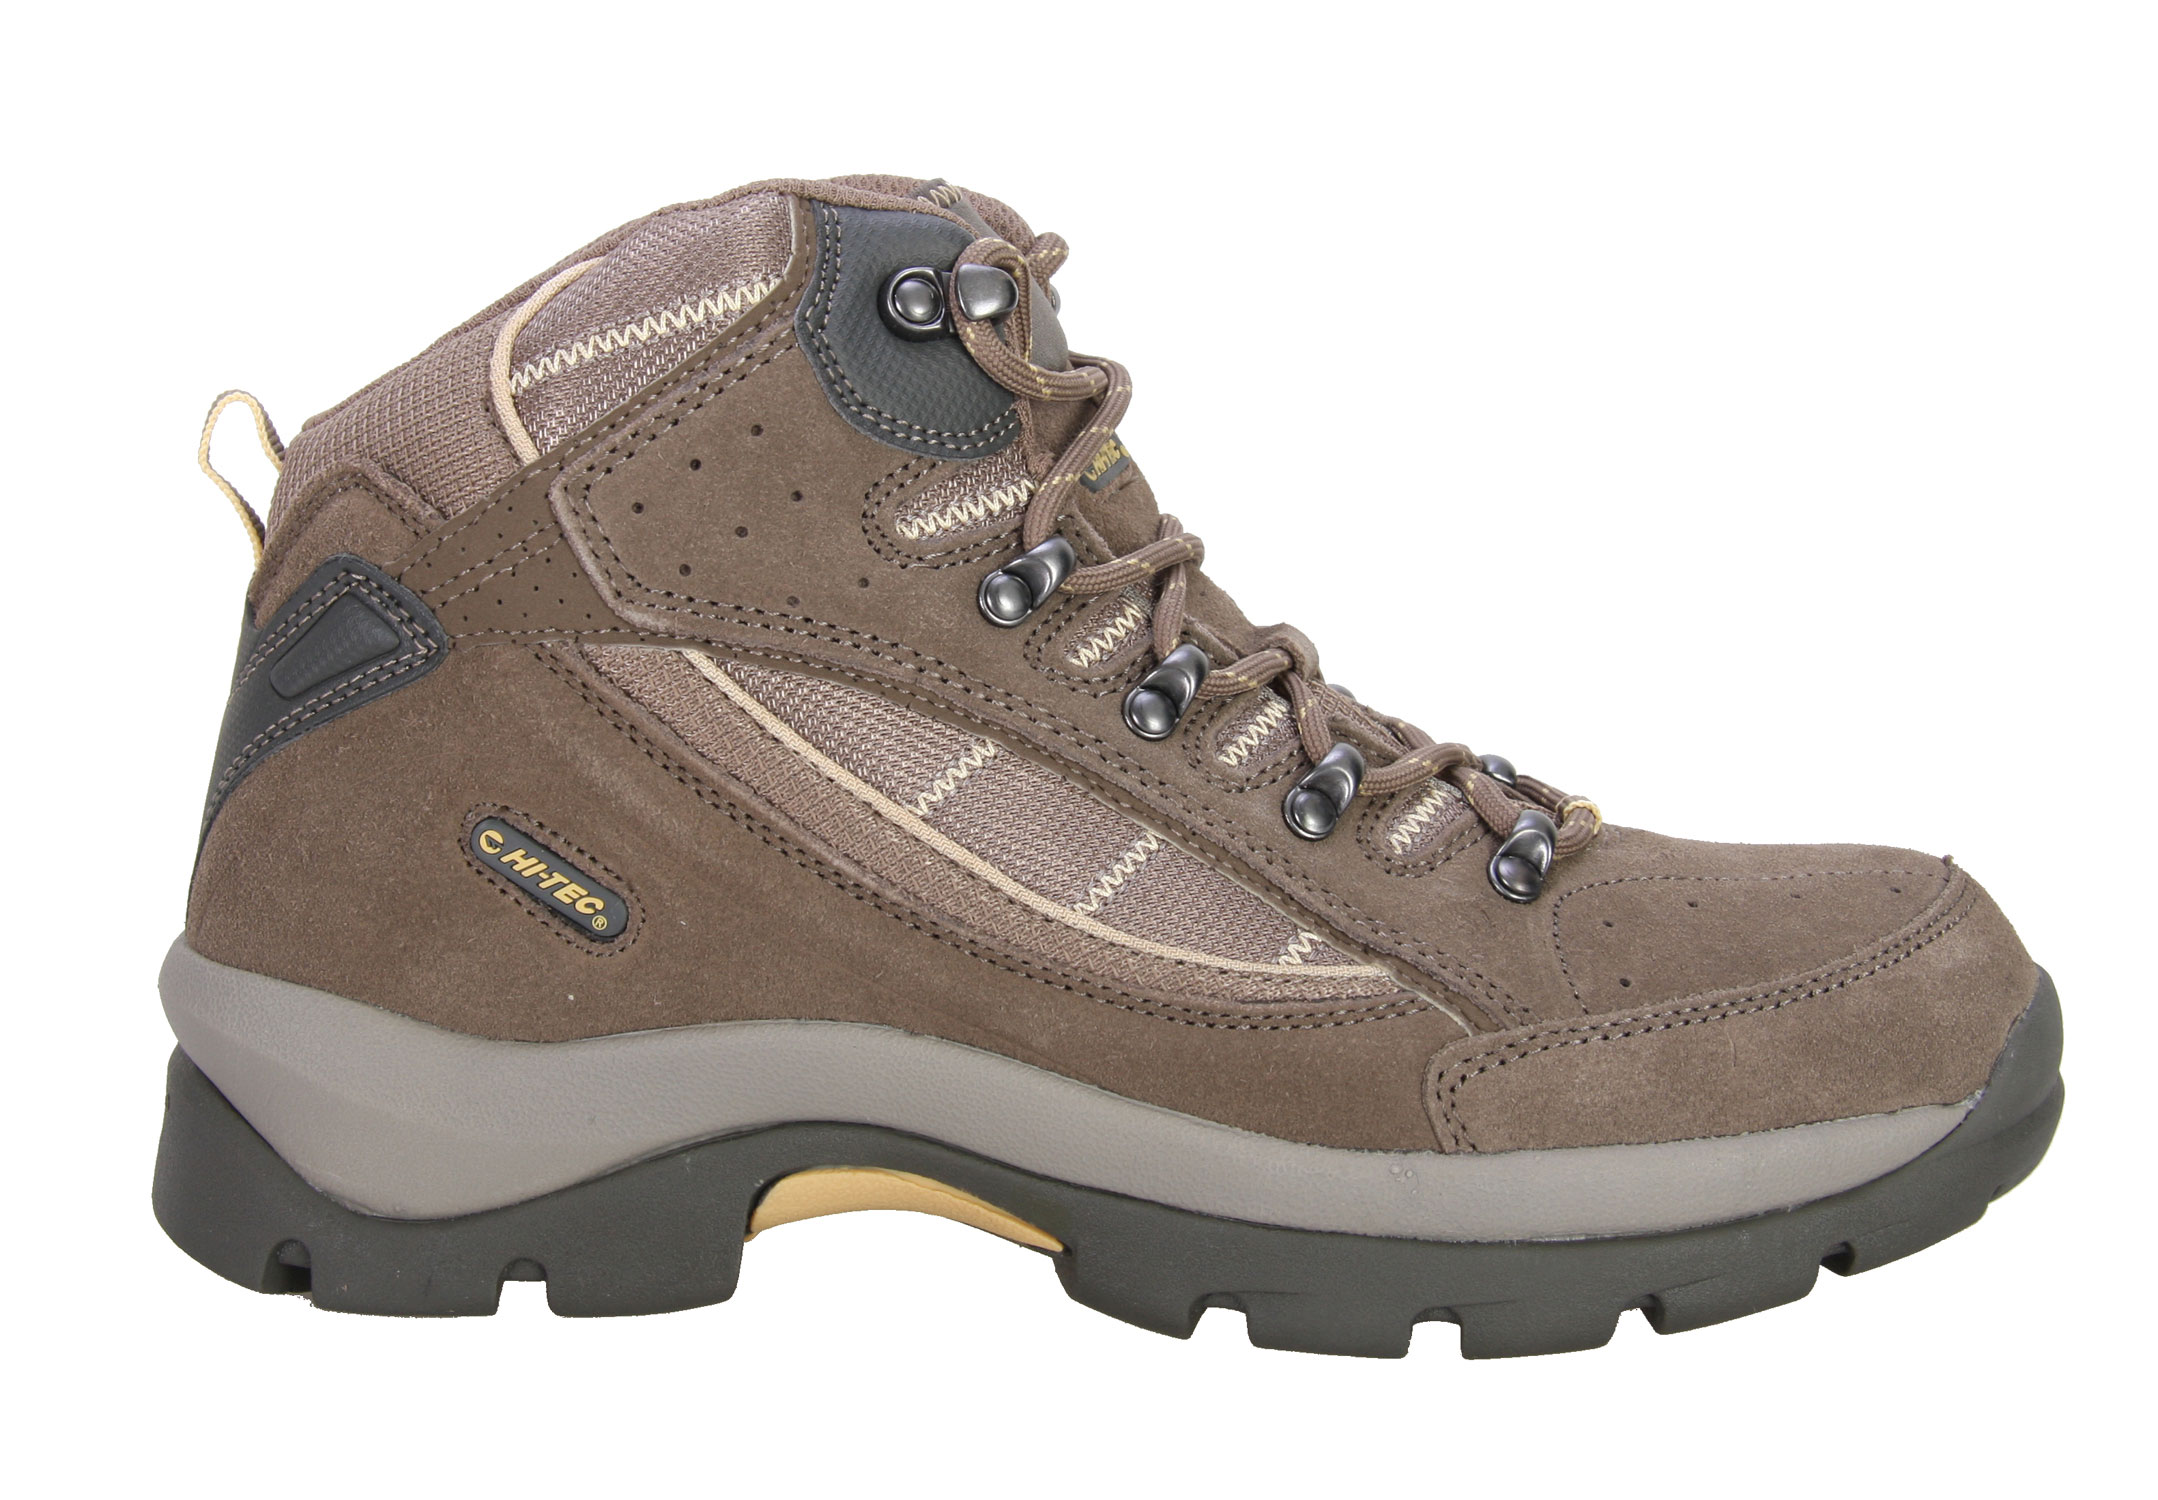 Camp and Hike Explore the great outdoors with these Hitec Seronga Mid Hiking Shoes. So fabulous, this reliable pair of shoes is ideal for any outdoor activities. Made with great traction soles, be sure you won't slip and fall. Featuring a superior fit with moisture wicking lining, you'll feel ultra comfortable all day long. Treat yourself to this great Hitec Seronga Mid Hiking Shoes and you'll wonder how you ever did without.Key Features of The Hitec Seronga Mid Women's Hiking Shoes: Suede leather and breathable mesh upper Rustproof brass hardware Moisture wicking lining Women's-specific last for superior fit and performance Comfort-Tec contoured sockliner Board lasted with steel shank for added rigidity and support Lightweight CMEVA midsole for cushioning Durable carbon rubber MDT hiking outsole - $41.95